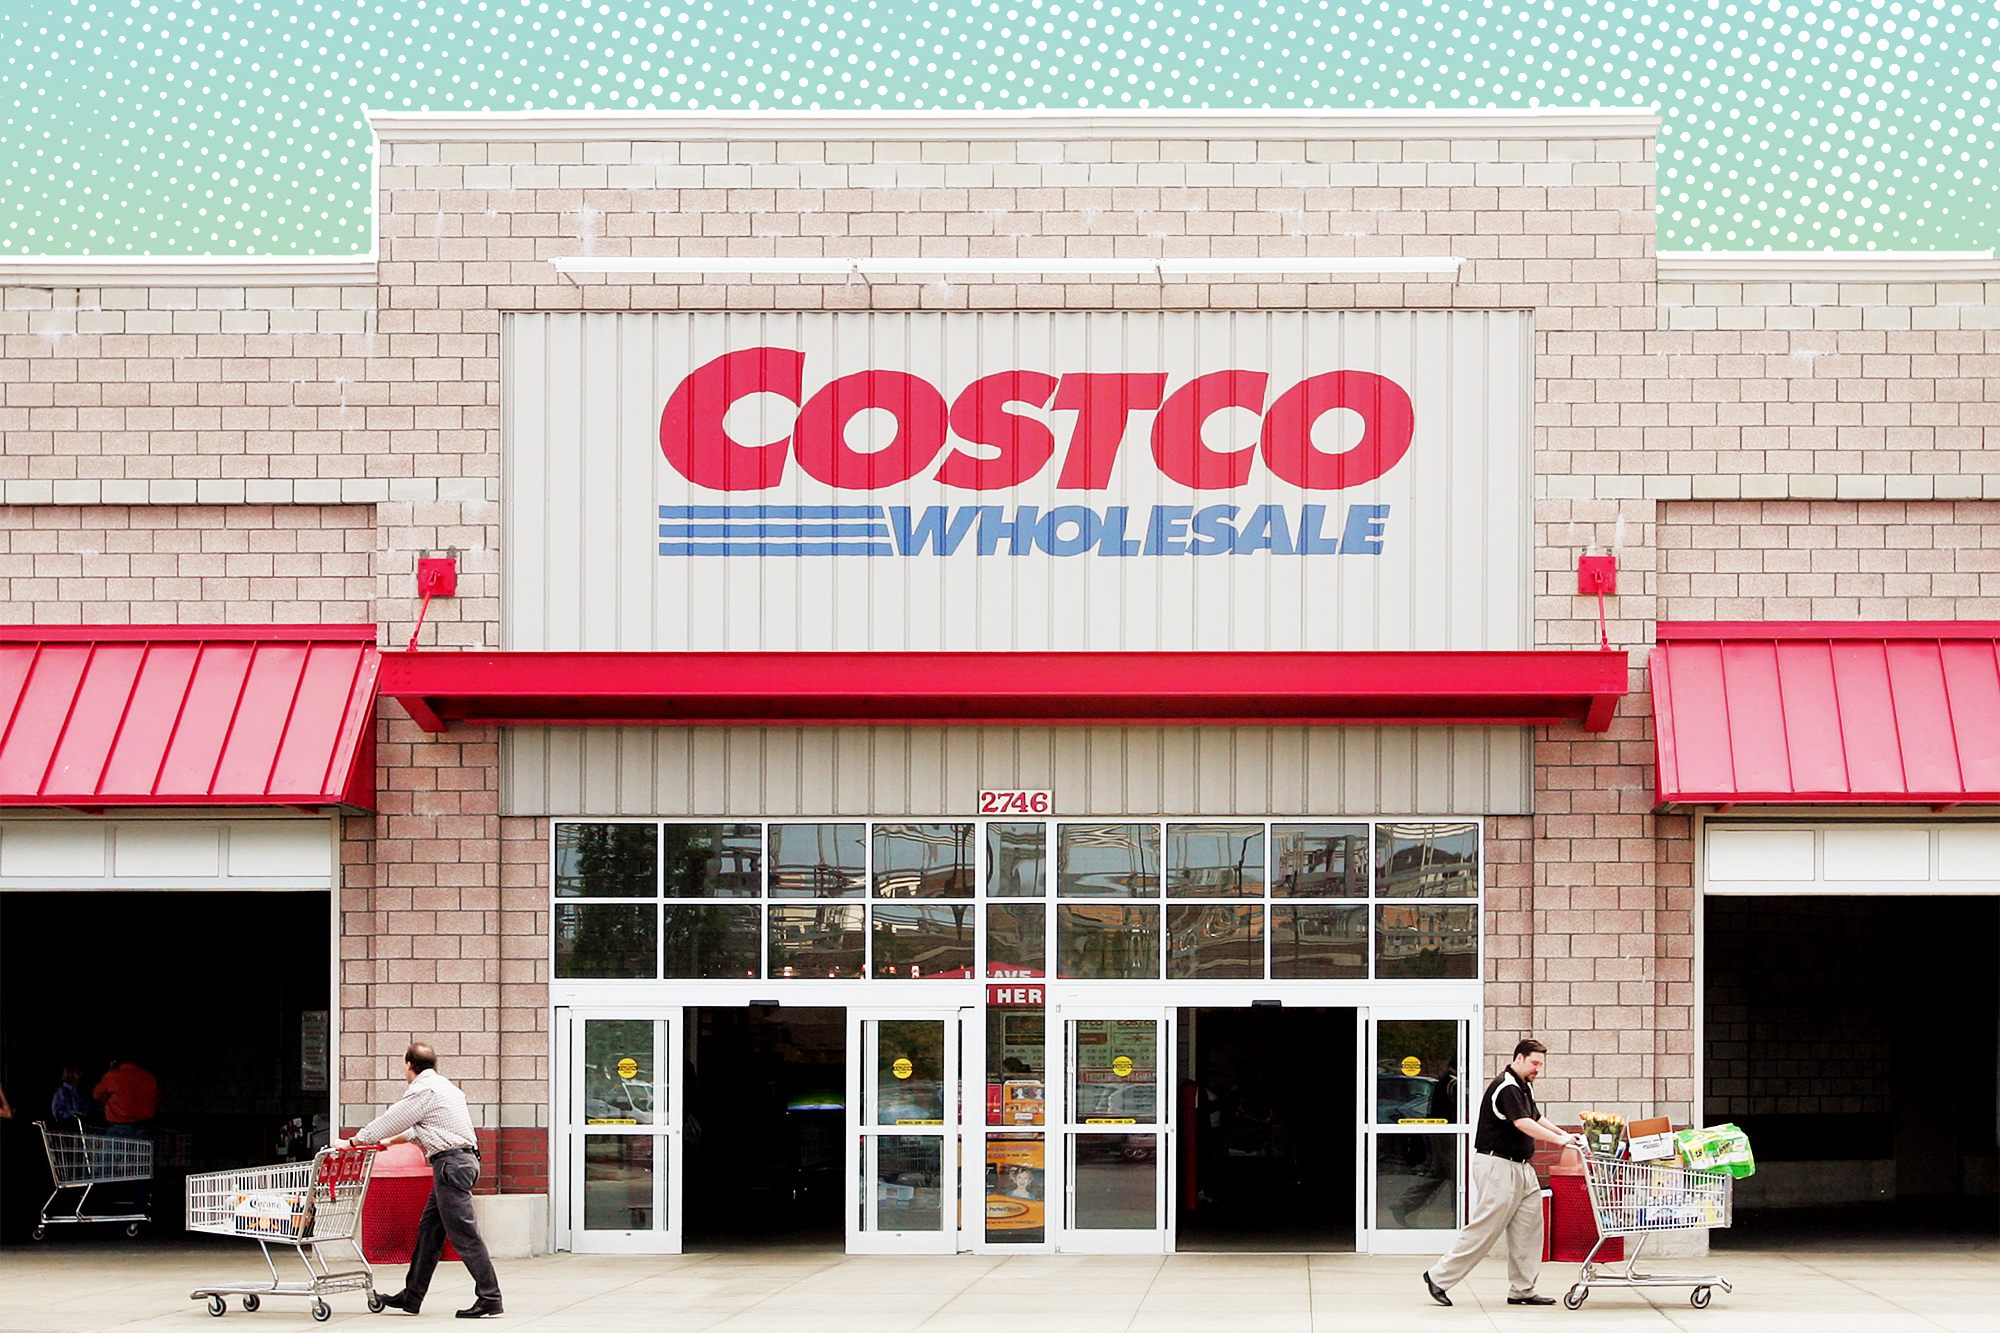 A Costco storefront with a designed treatment